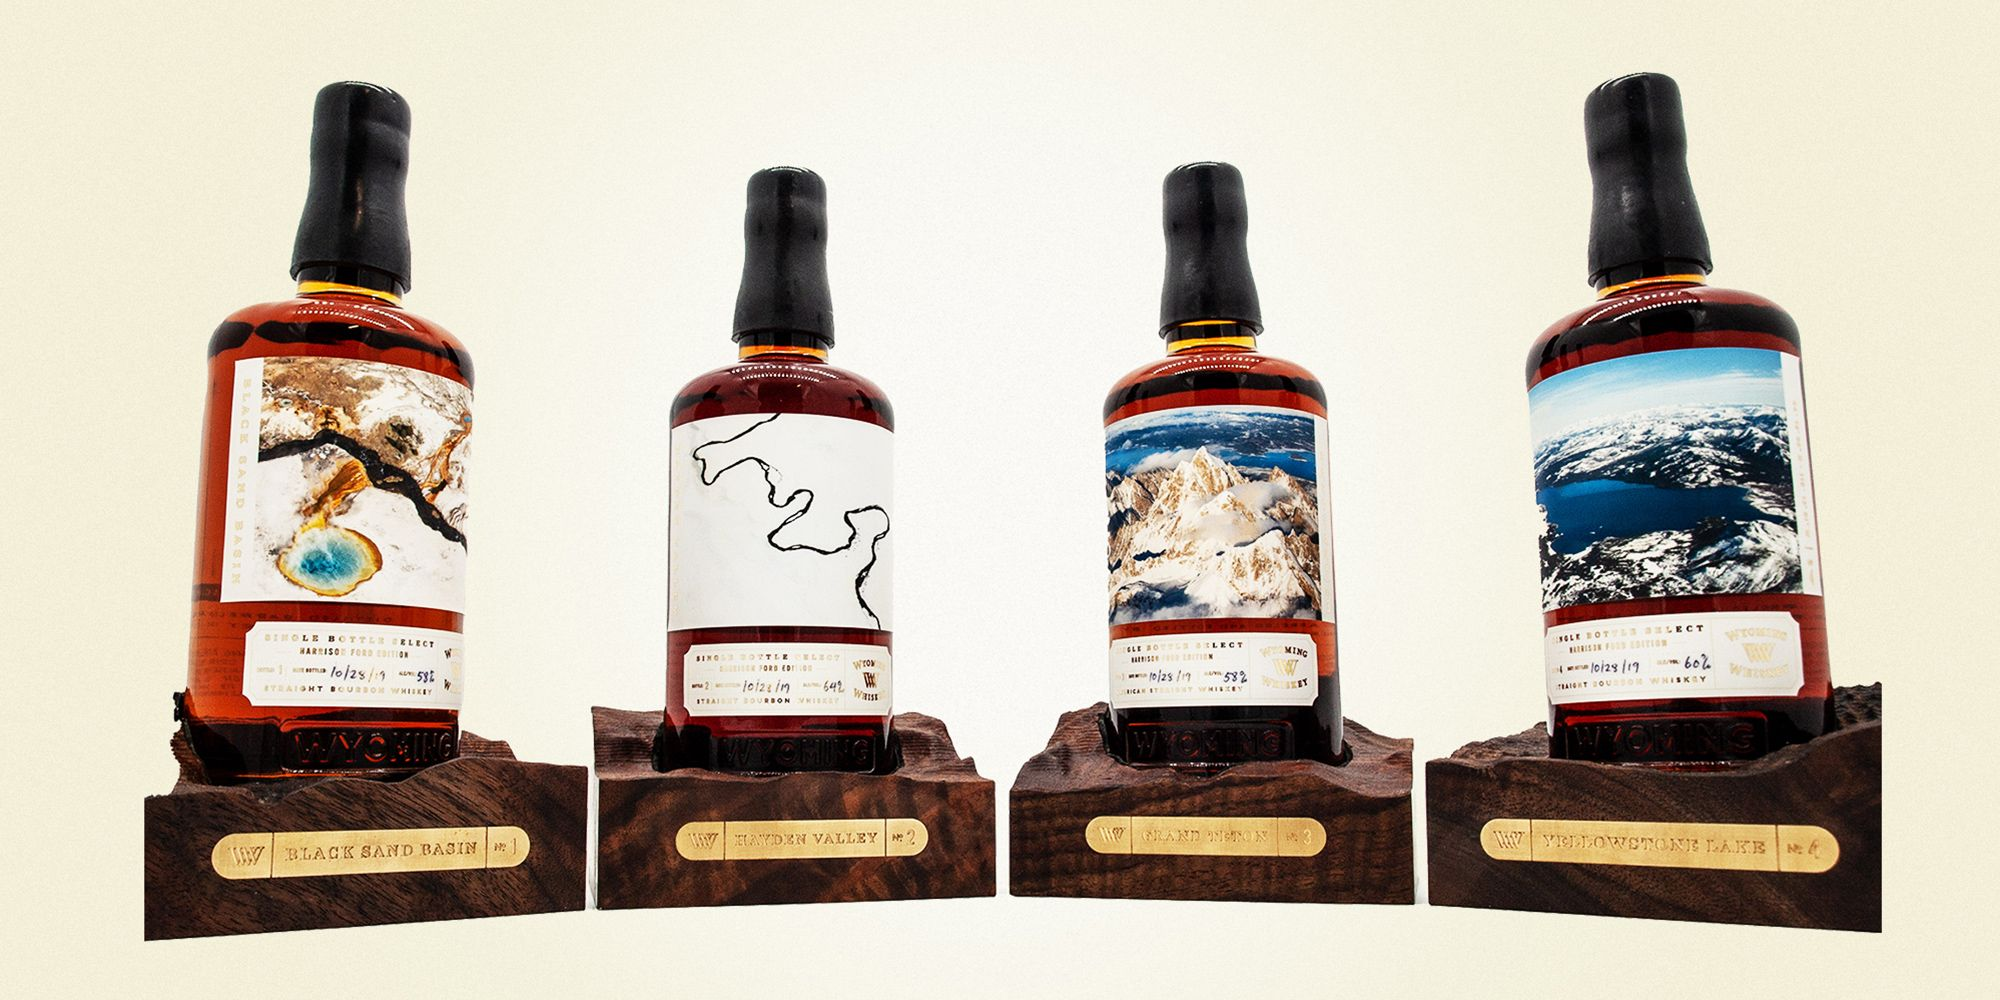 Wyoming Whiskey Is Auctioning Off Bottles to Support the National Parks